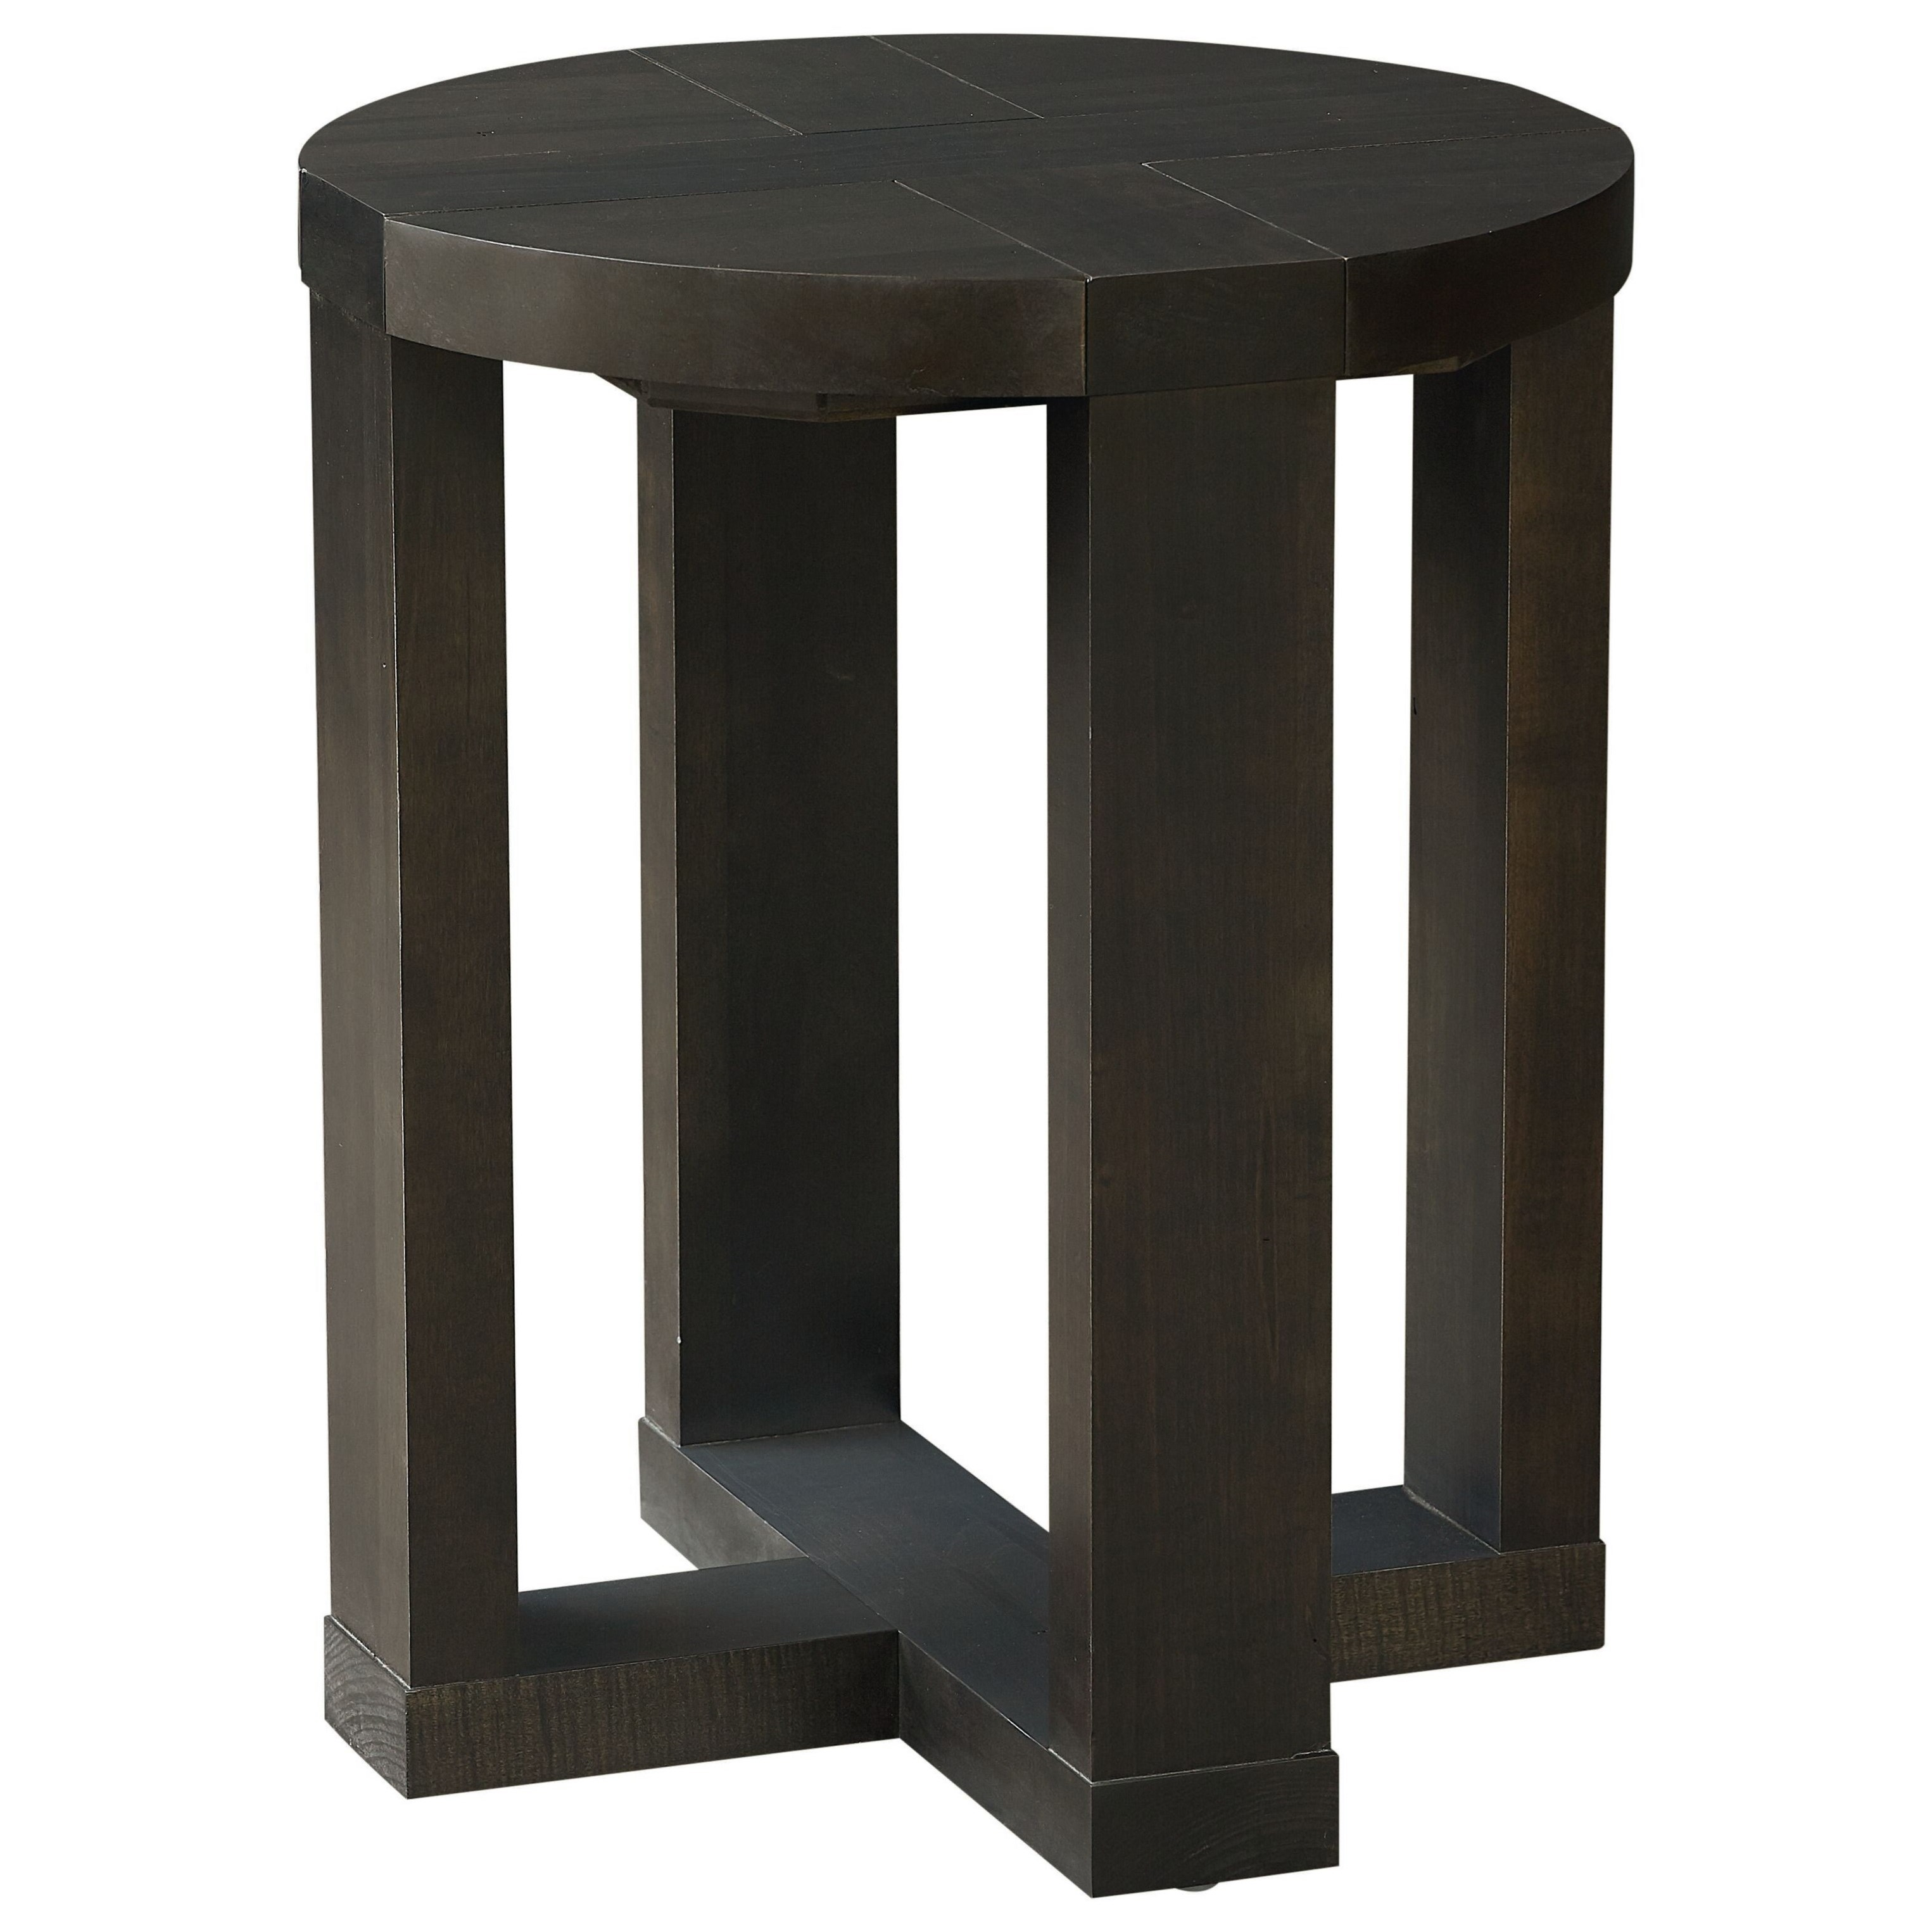 Skyline End Table by Bassett at Becker Furniture